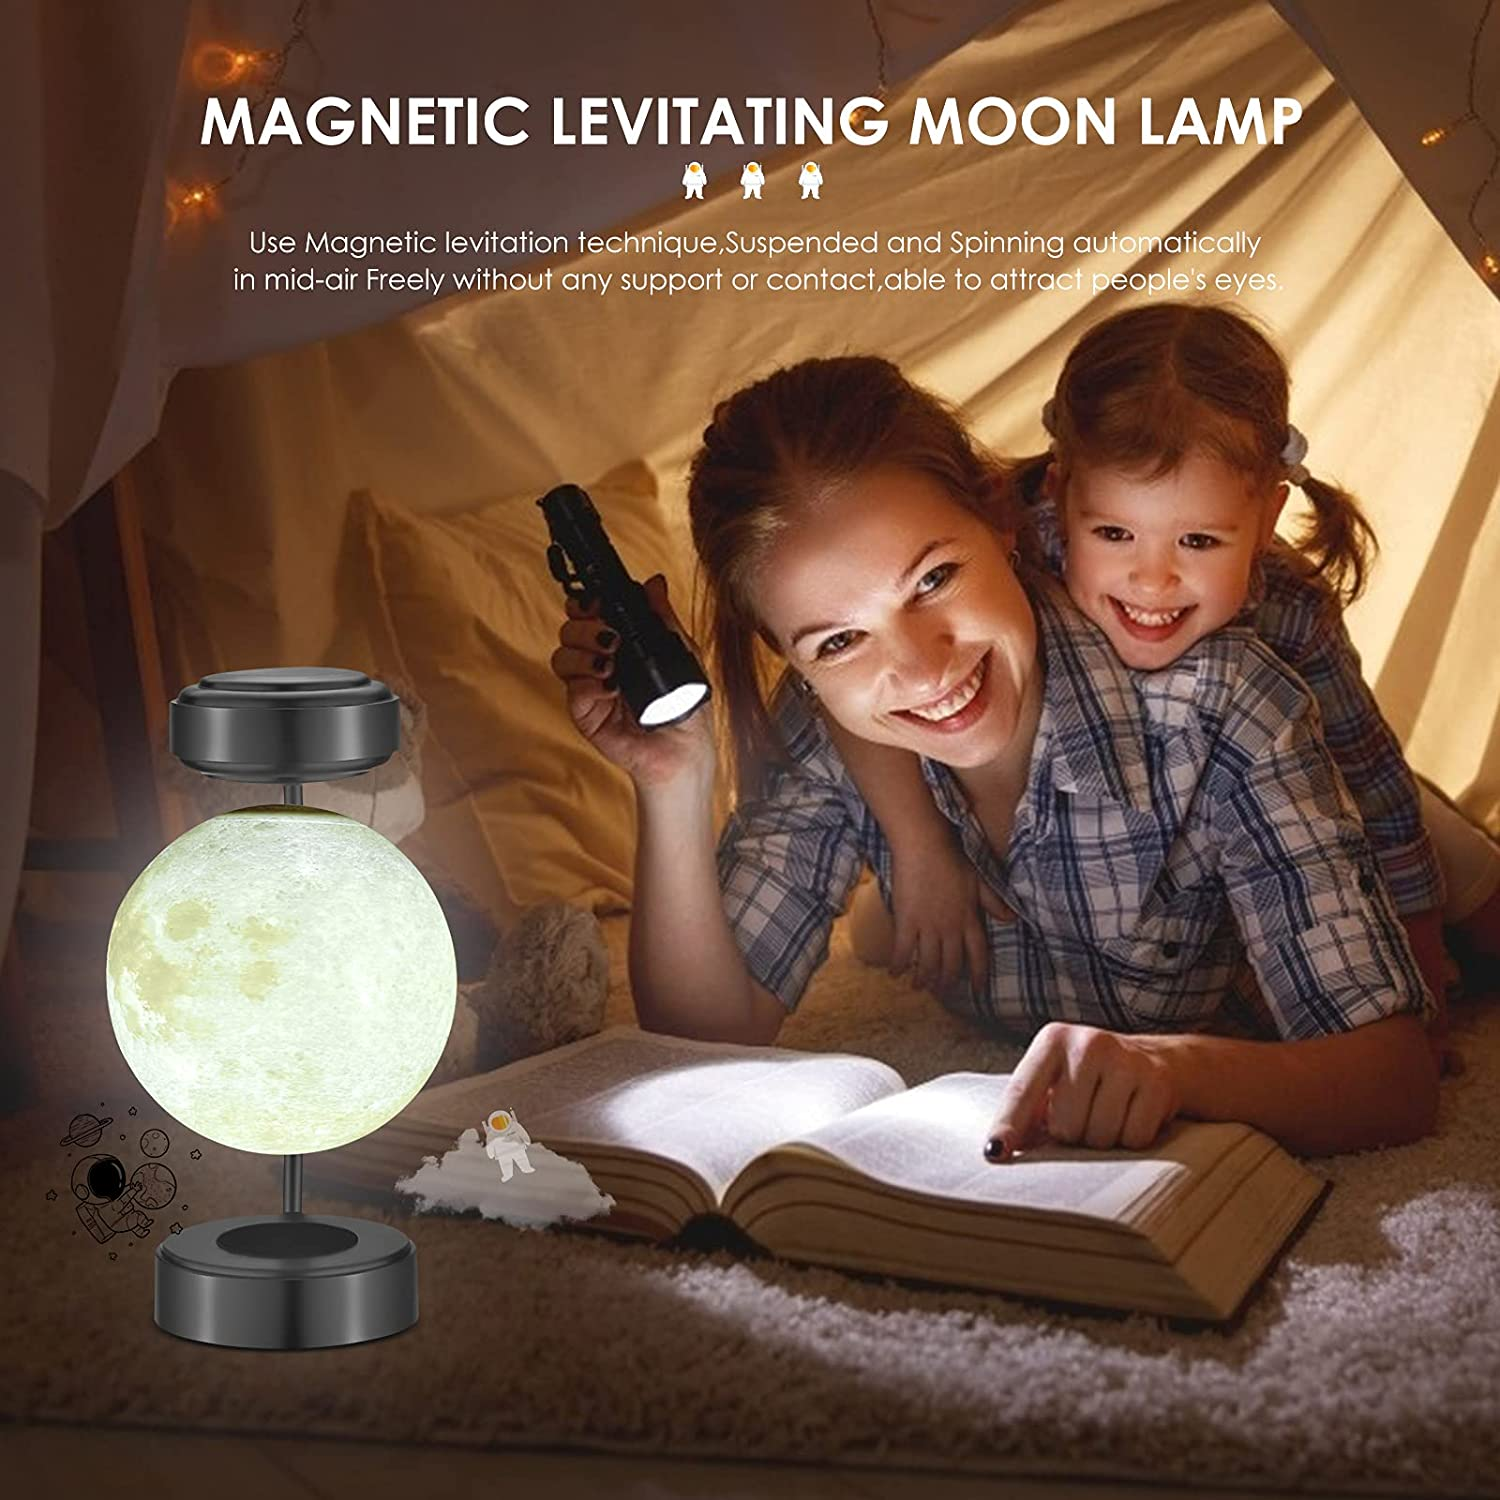 Levitating Moon Lamp,Suspended Moon Light, with Luxury Iron Bracket and 3D Printed LED Moon Light, can Float Freely in The air i enlarge